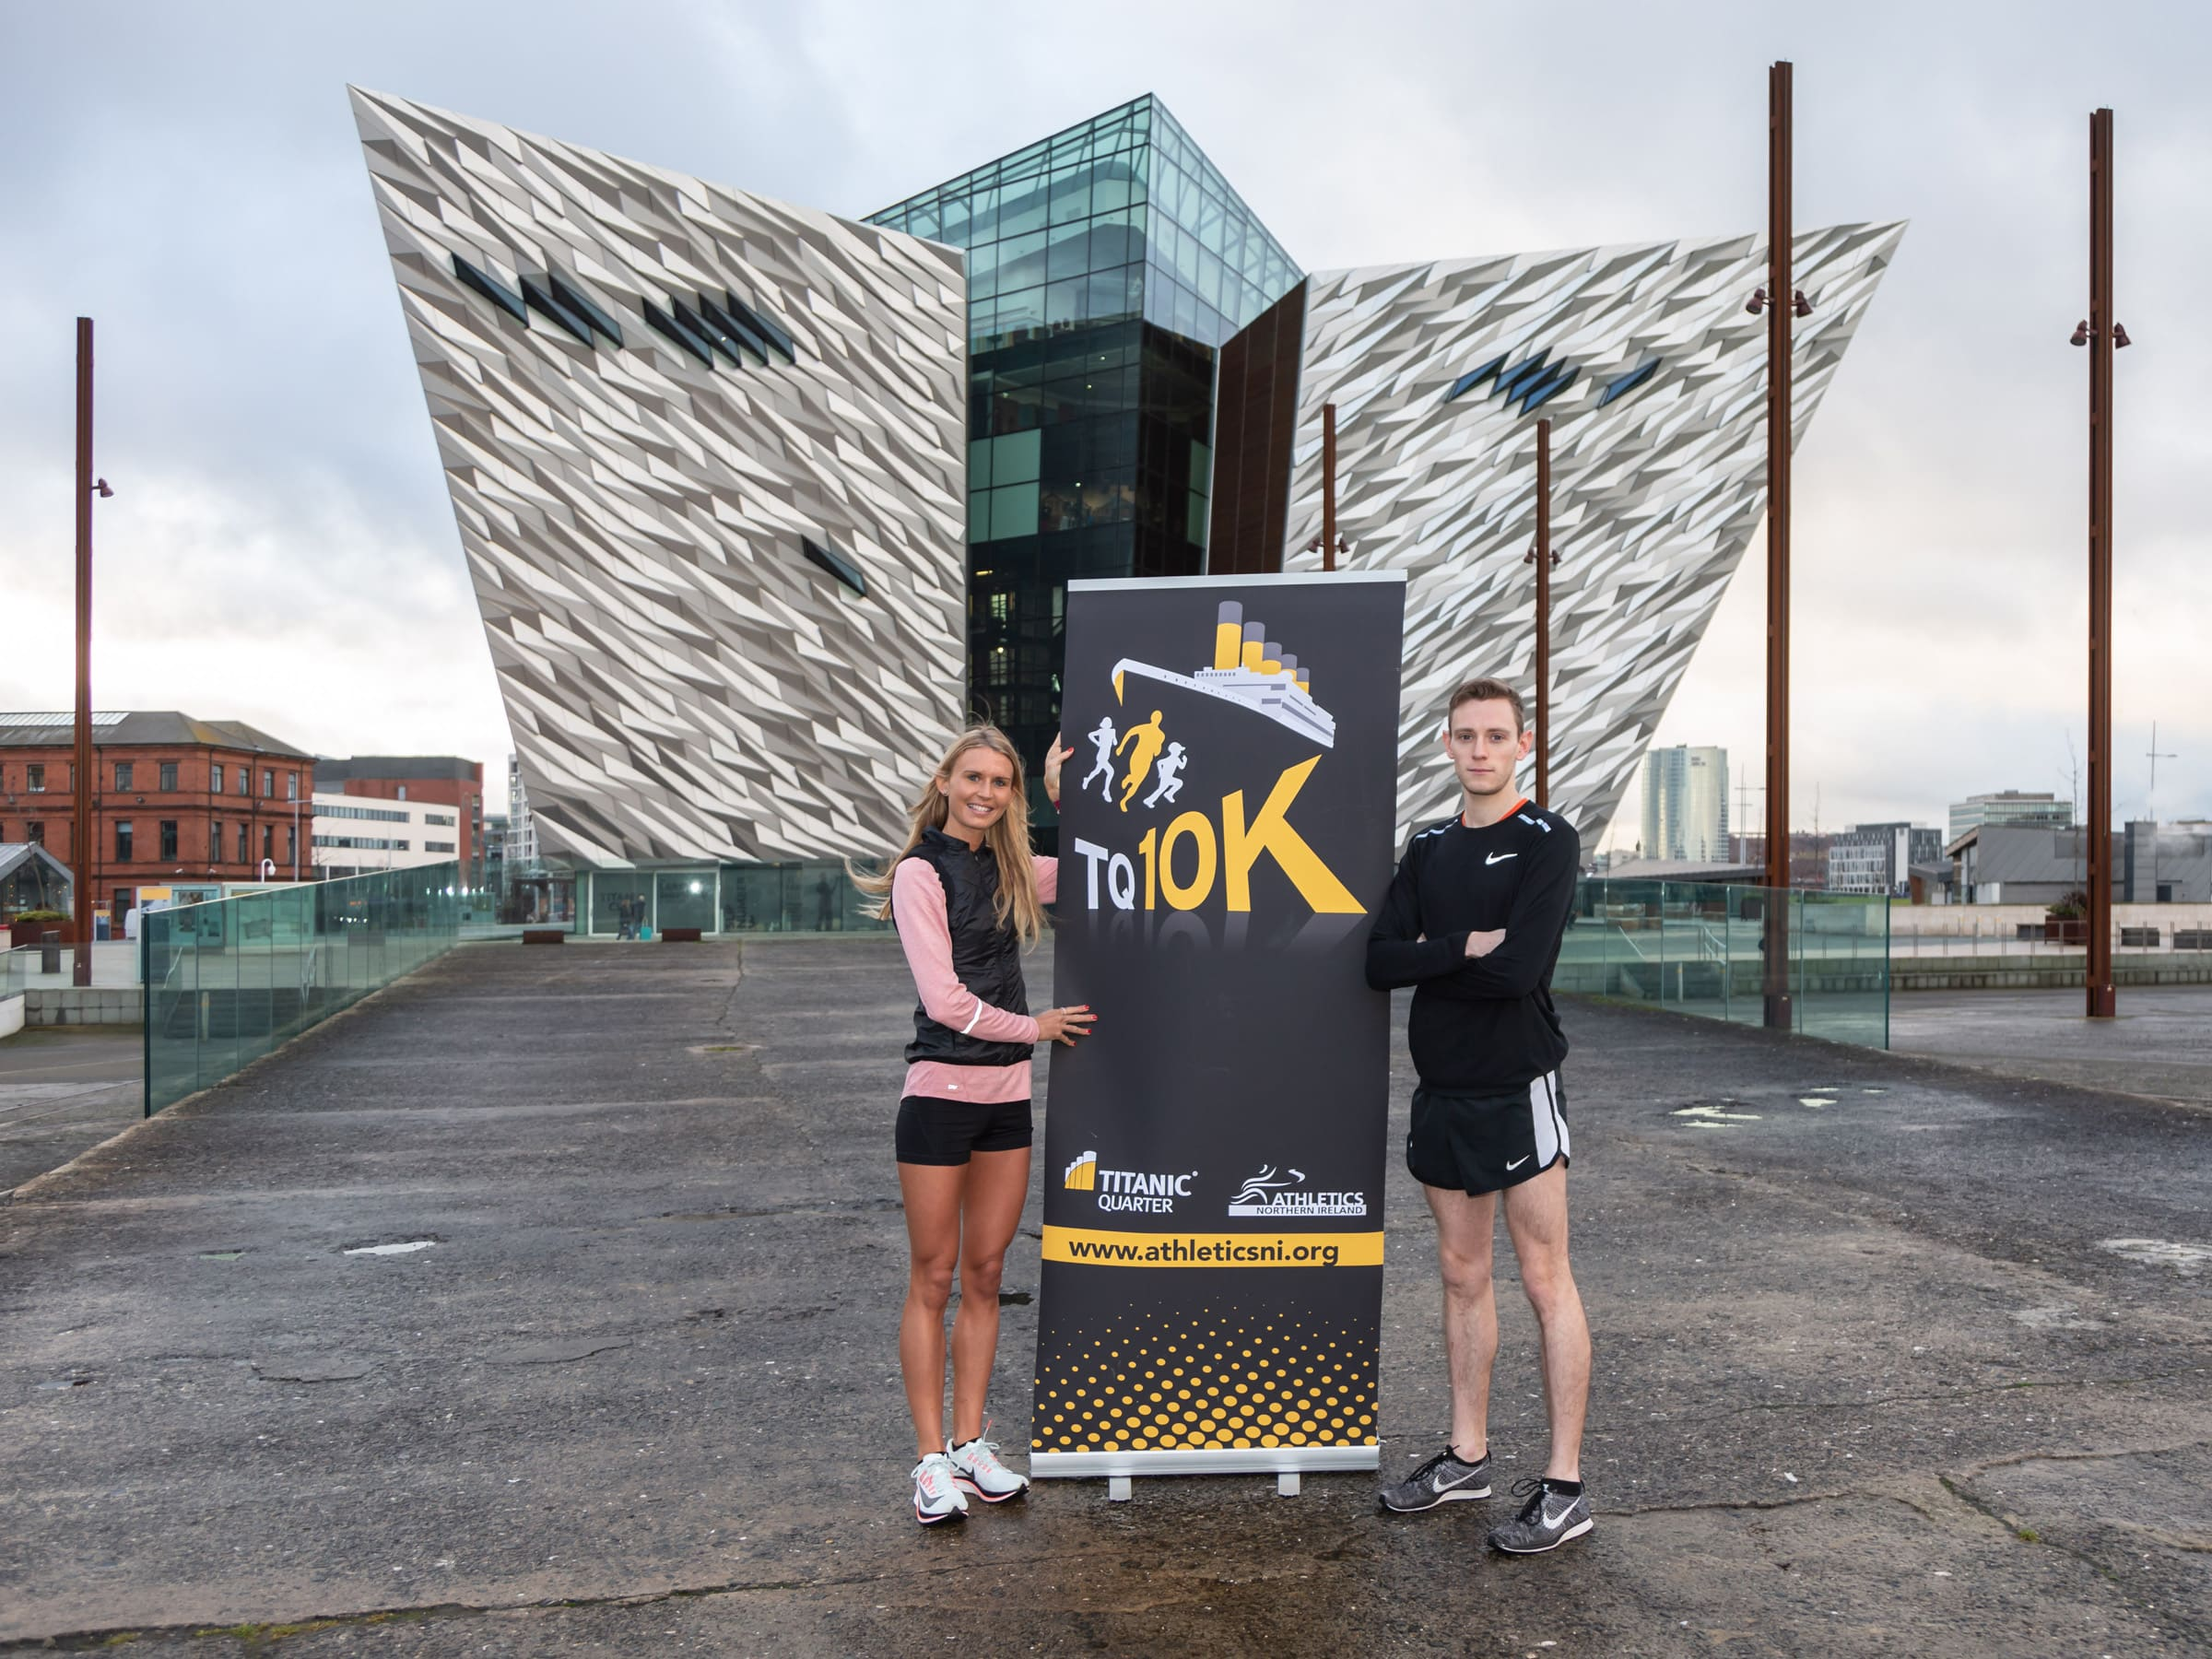 The 2019 Titanic Quarter 10k is launched